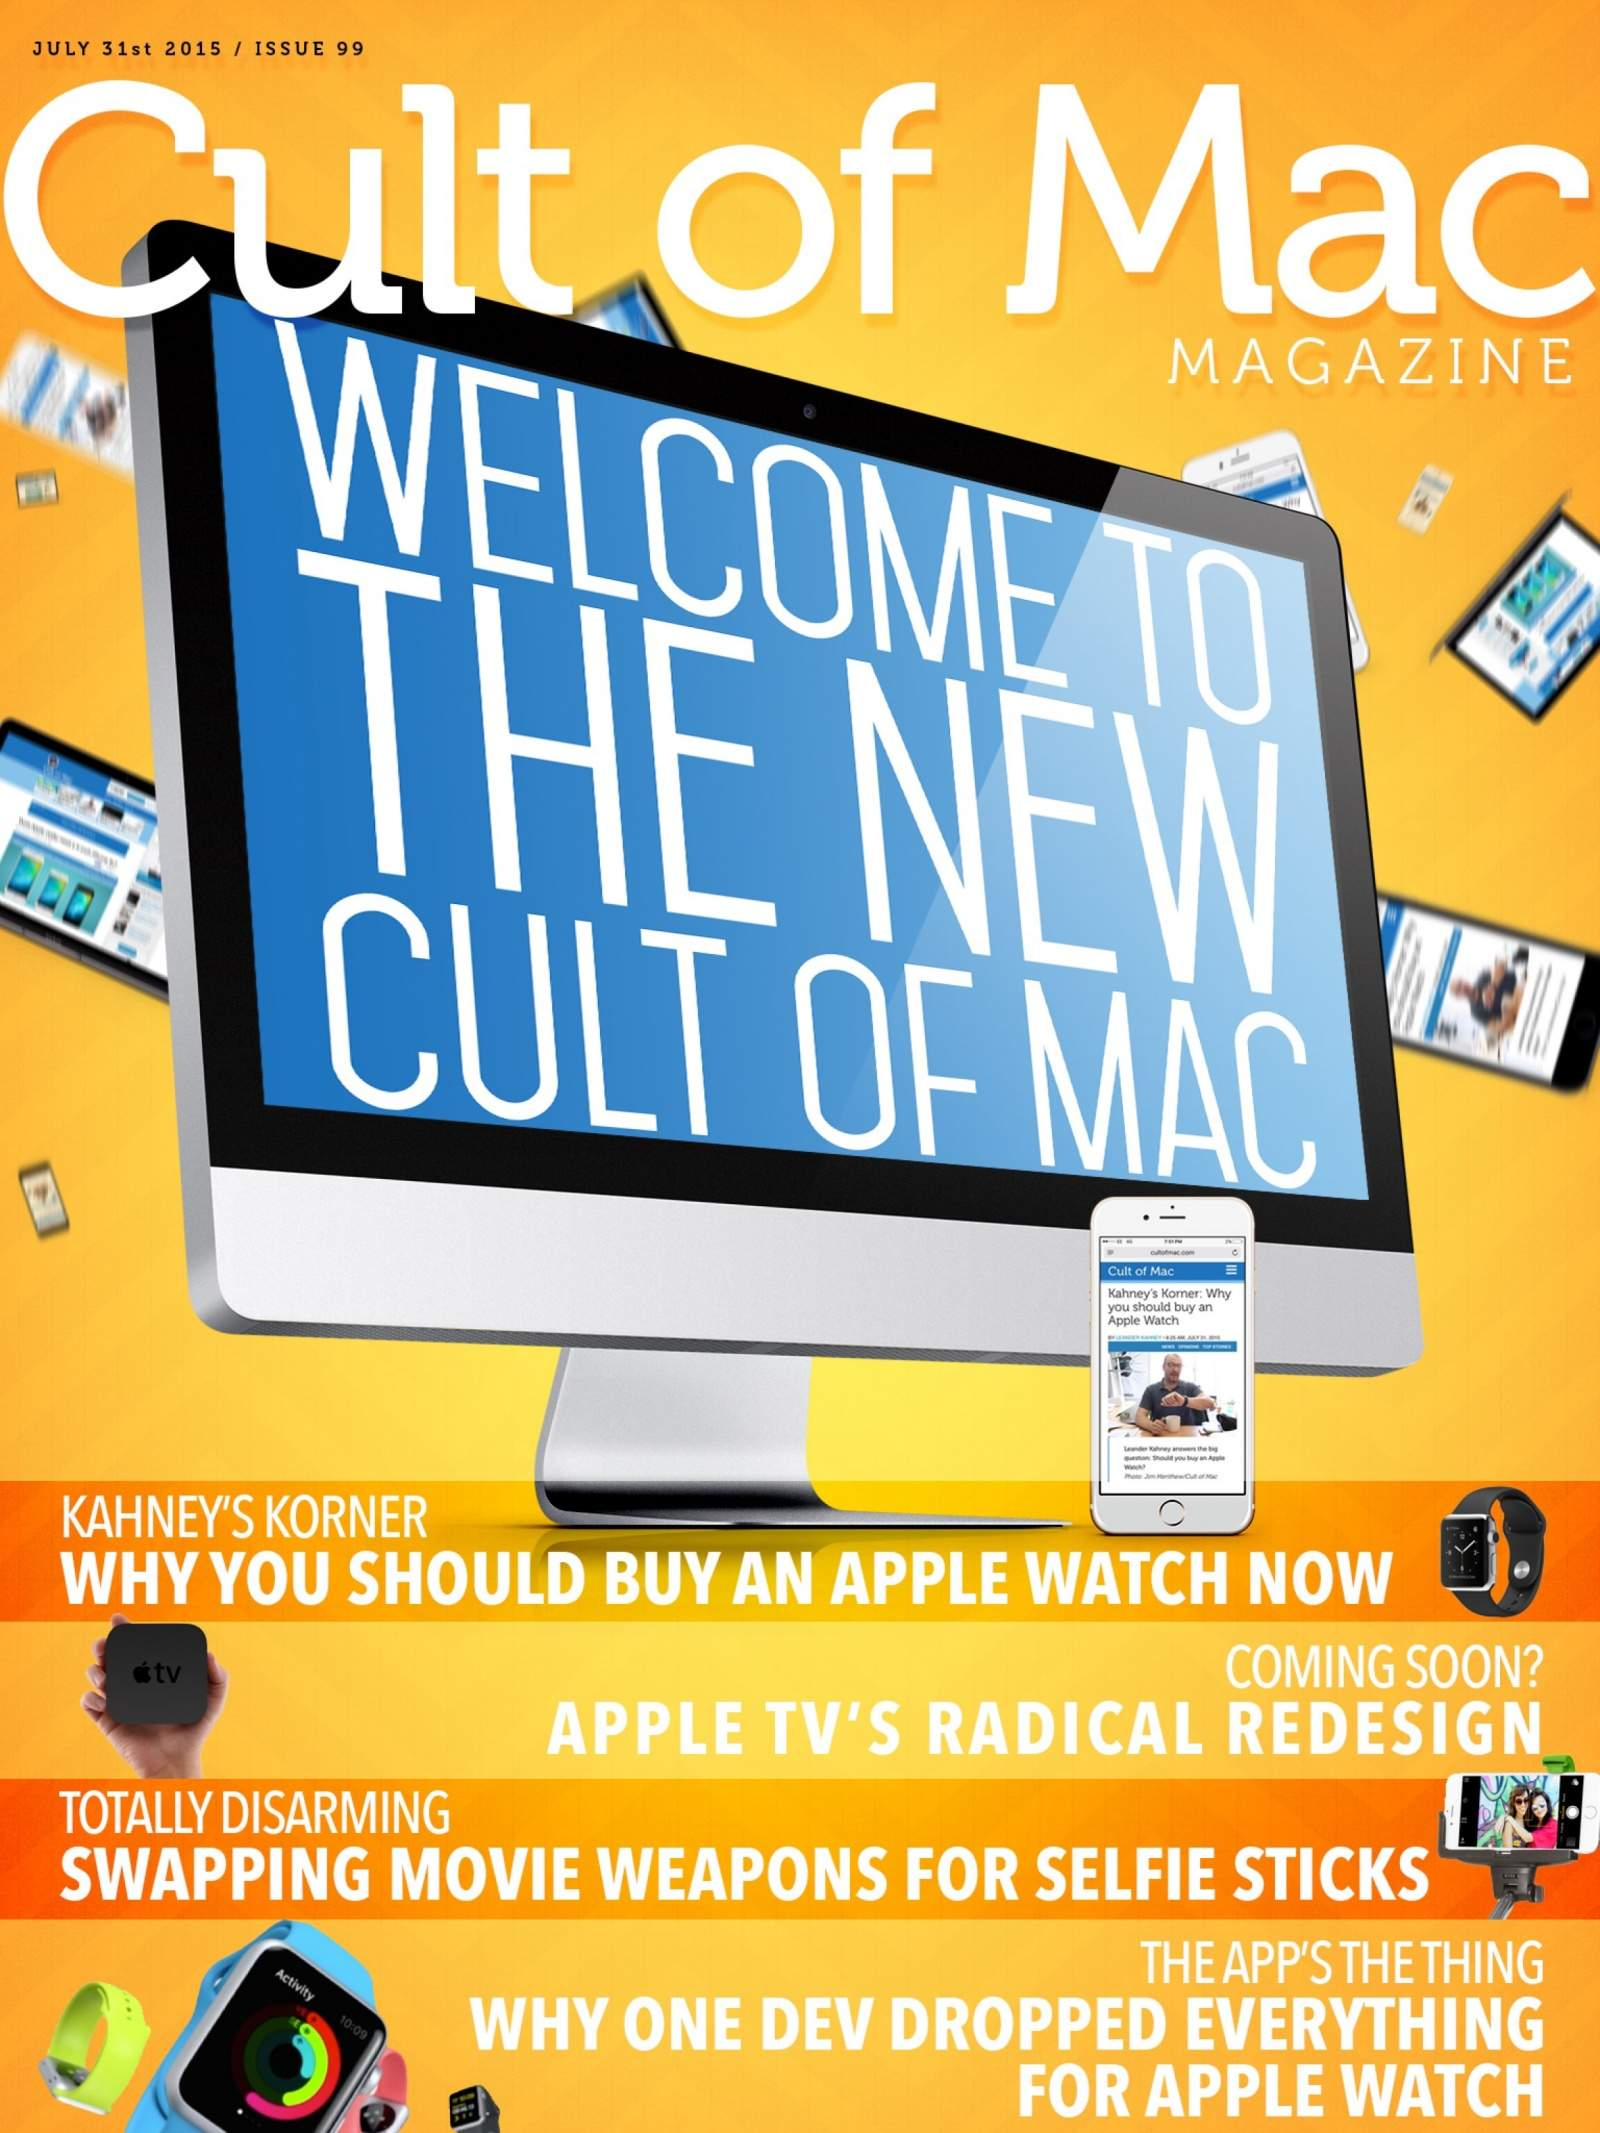 In case you hadn't noticed, Cult of Mac's got a new look!